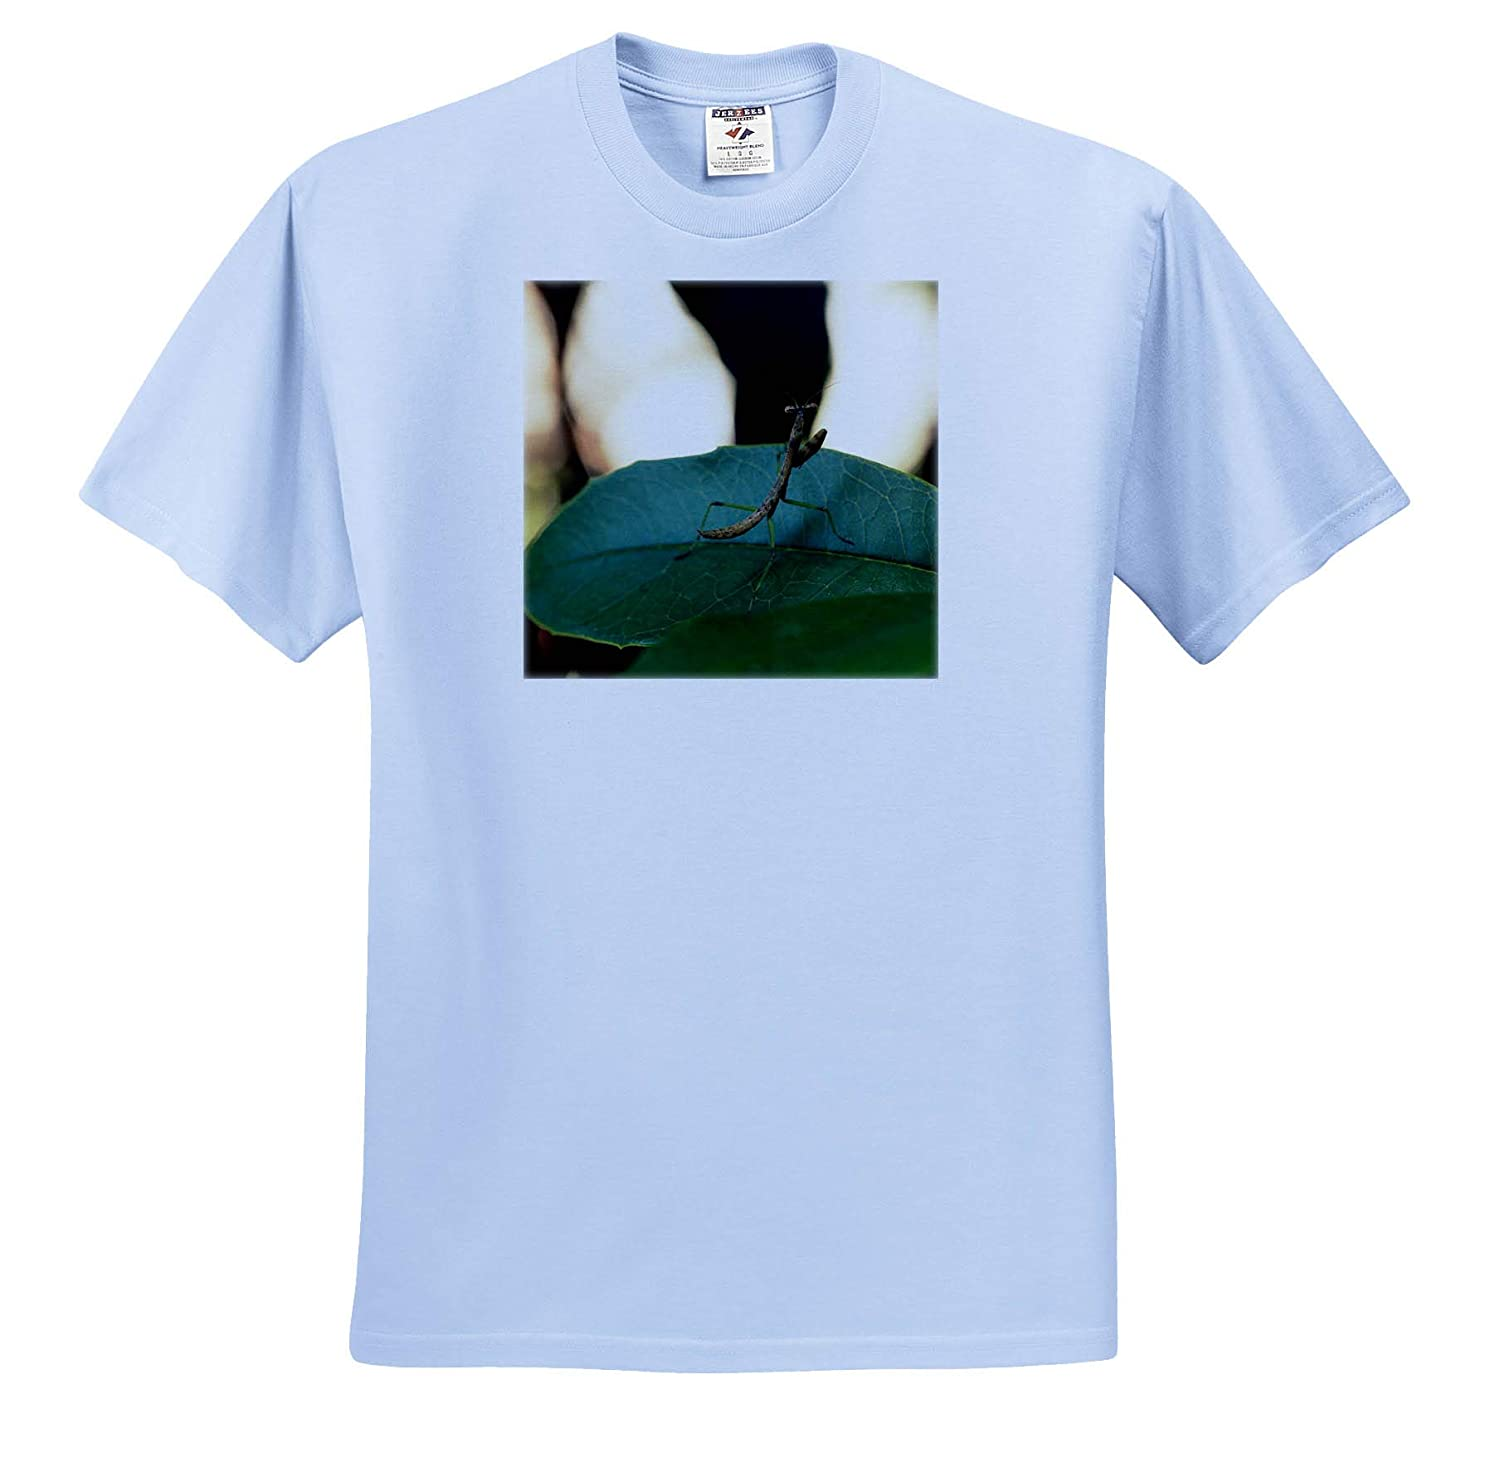 Insects 3dRose Stamp City Macro Photograph of The Back of a Baby Praying Mantis on a Leaf - Adult T-Shirt XL ts/_319048